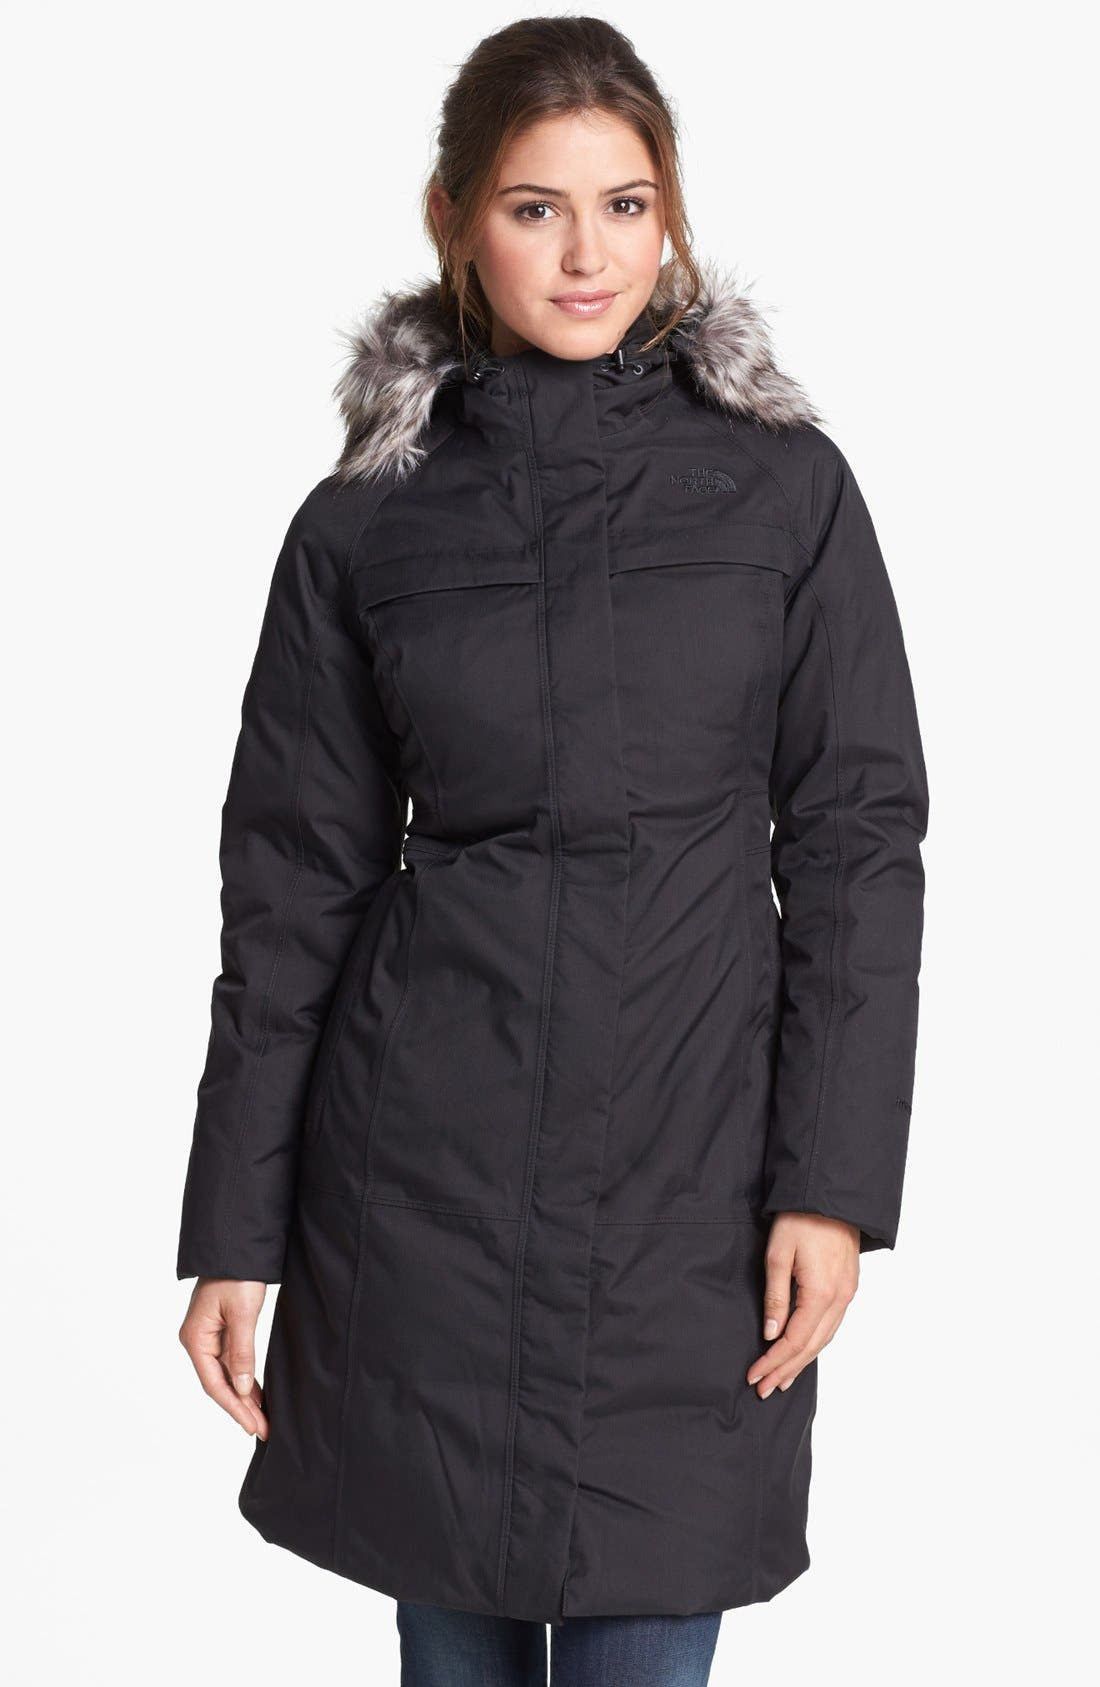 The North Face® Store at Livermore Outlets Drive, Livermore, CA, Shop at taxiinbelgrade.ga and get free shipping to The North Face® store at Livermore Outlets Drive, Livermore, CA, , or get free standard shipping on orders over $